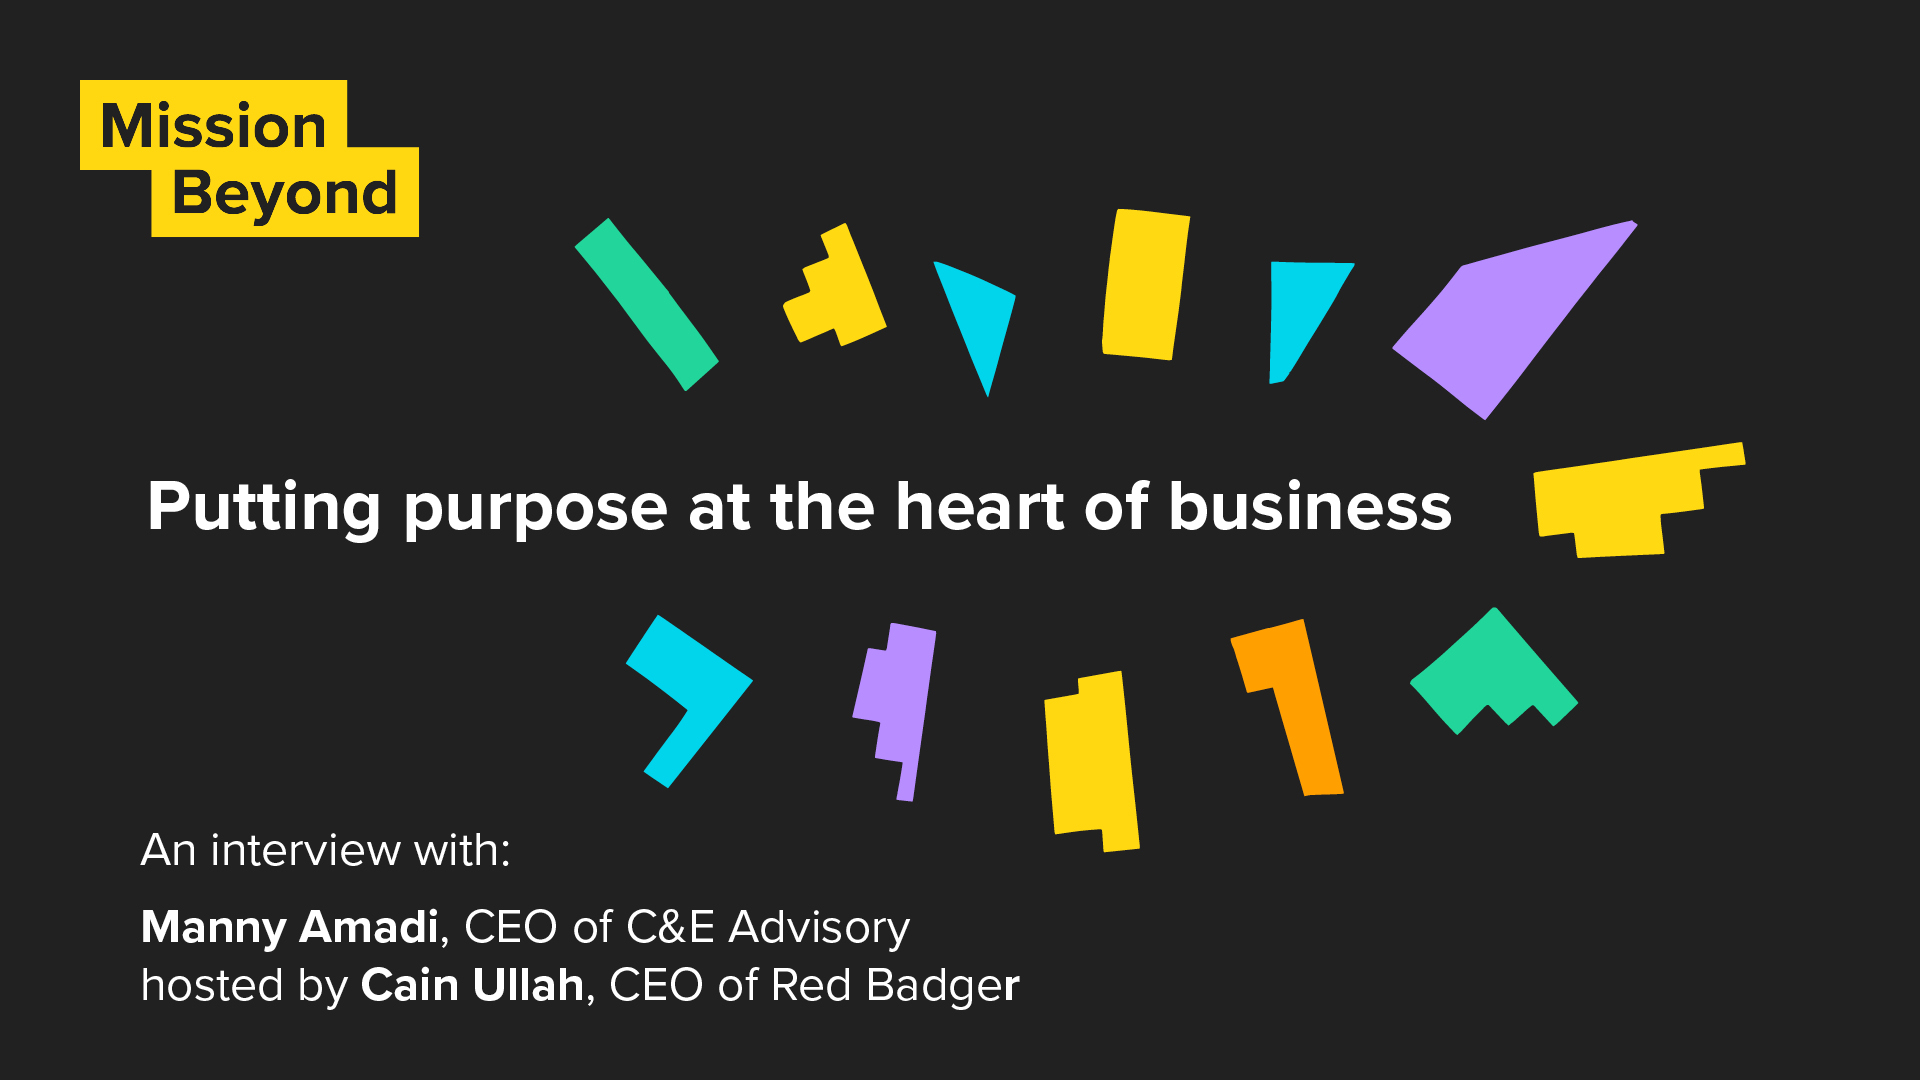 Putting purpose at the heart of business - a Q&A with Cain Ullah and Manny Amadi